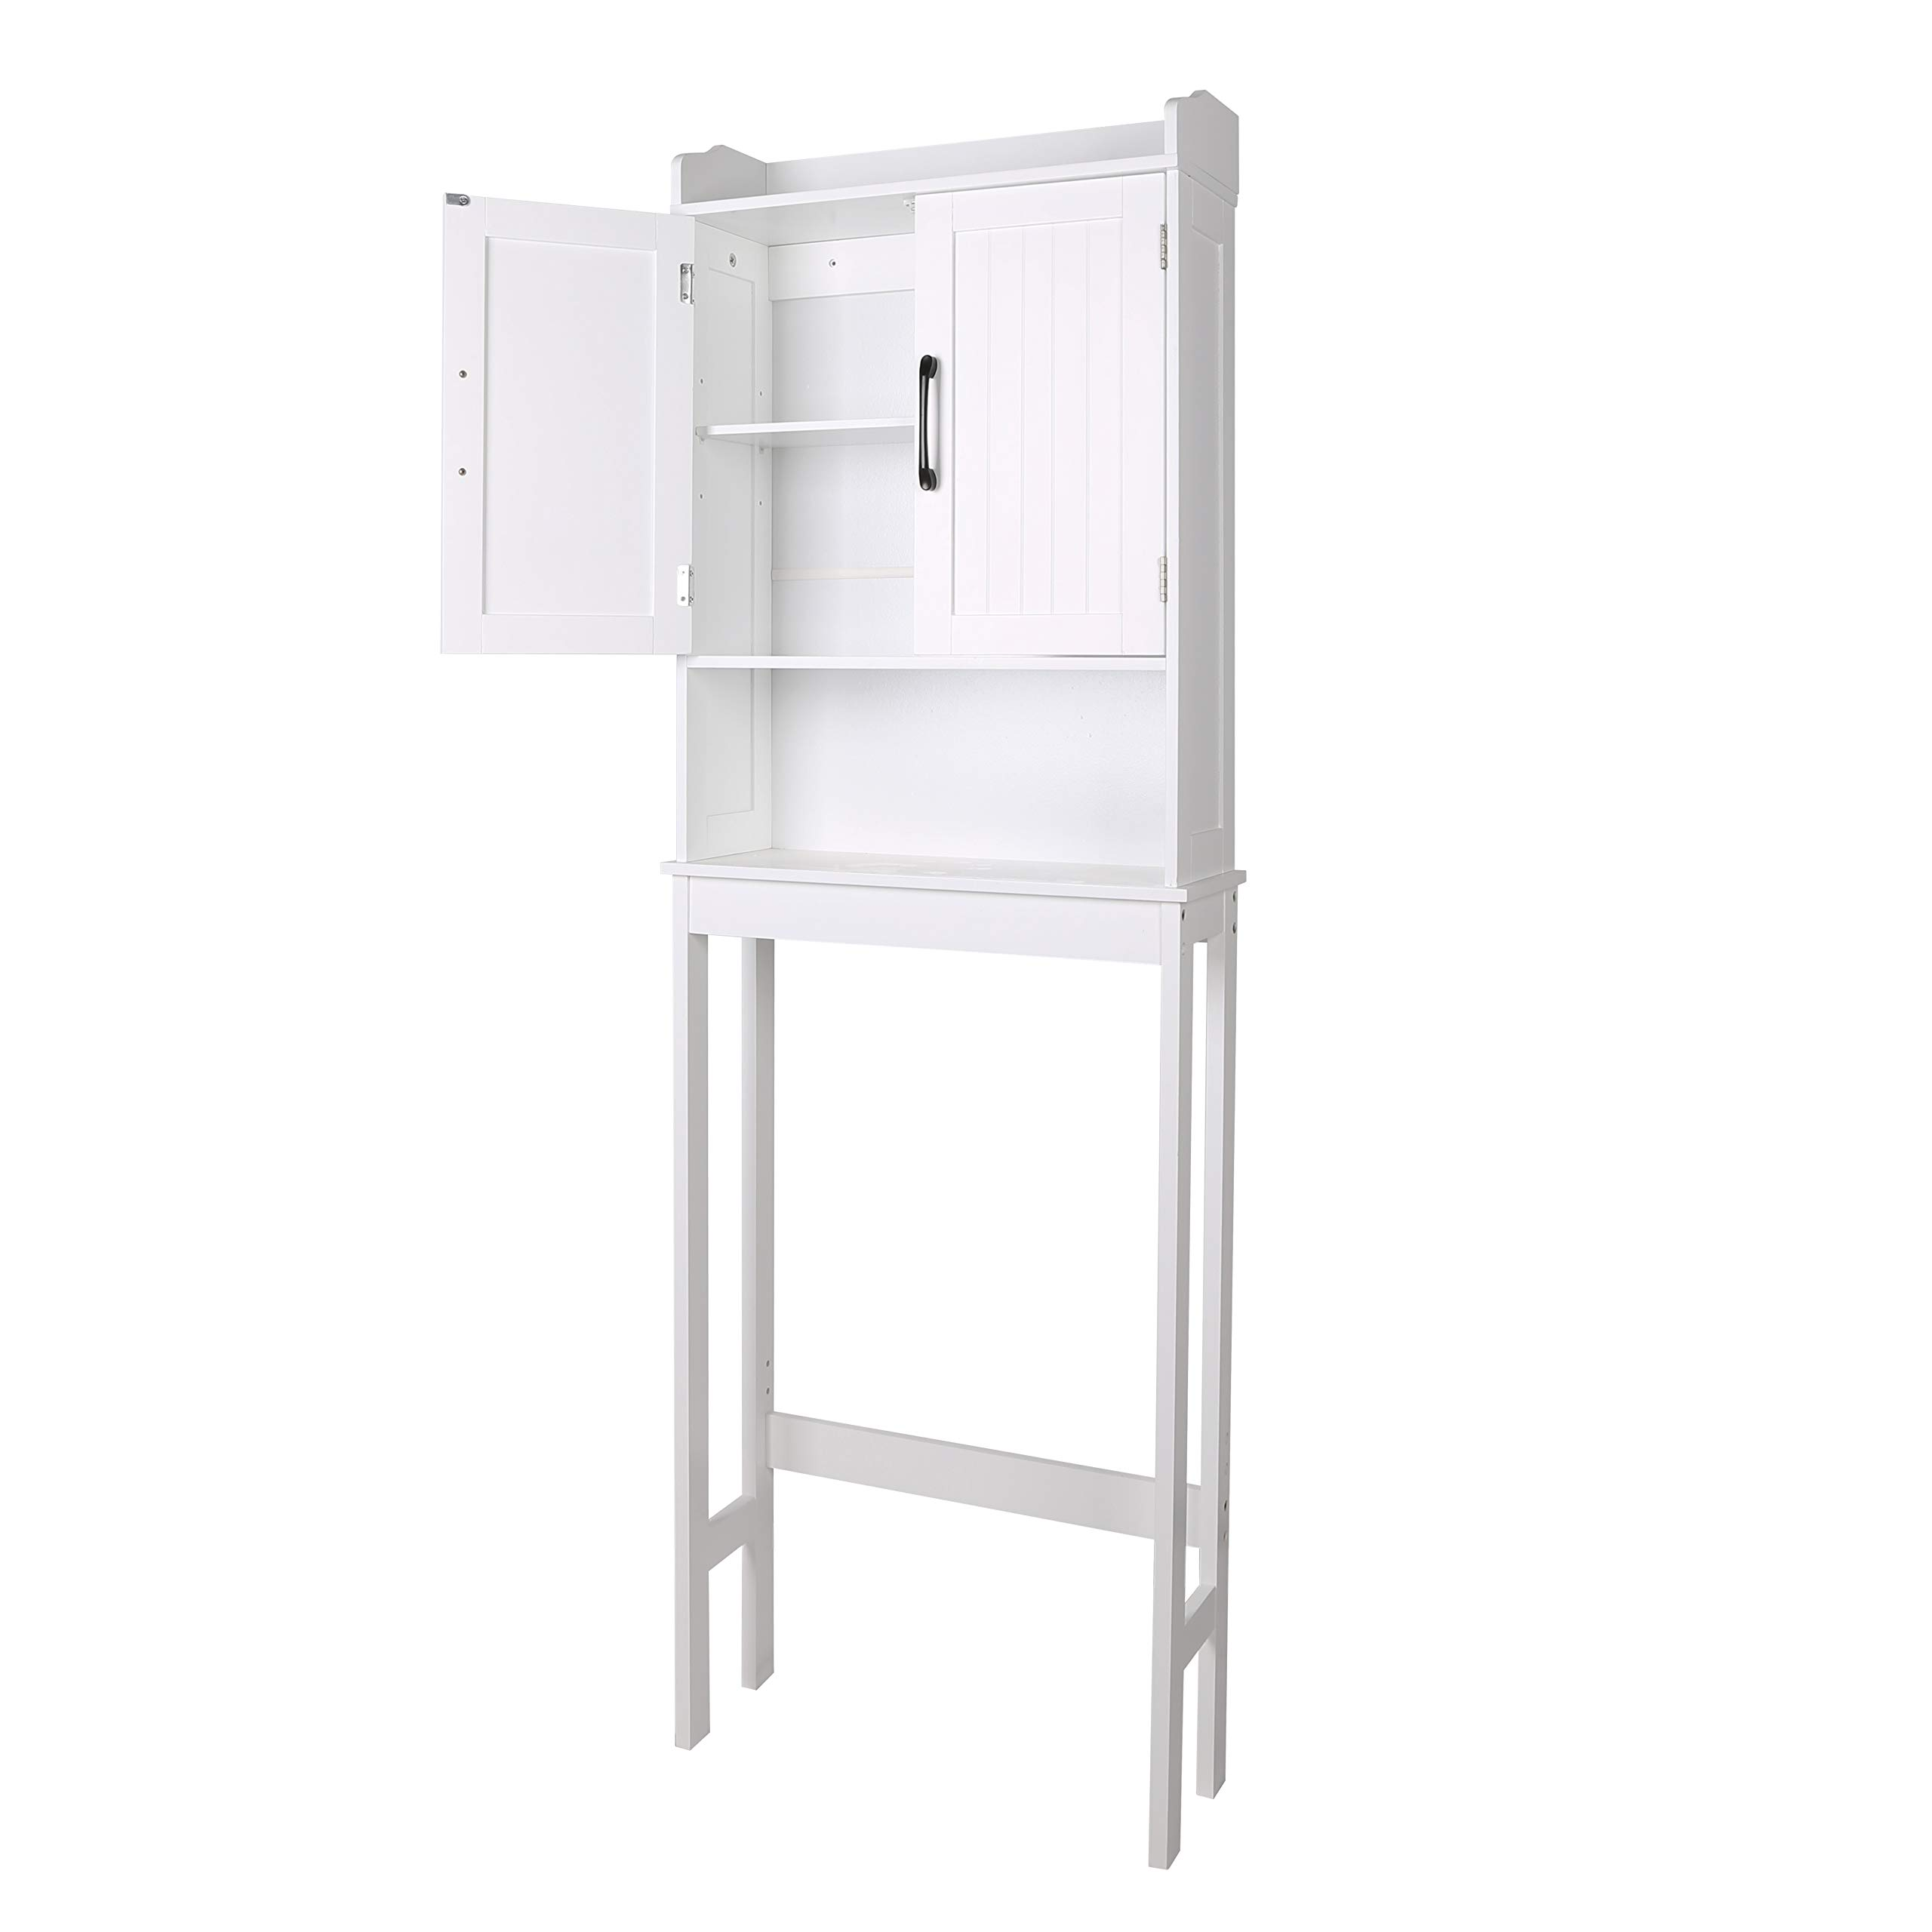 """Bathroom Cabinets Free Standing, Over-The-Toilet Storage Unit, Tall Cupboards with 2 Doors, Modern Style Wooden Floor Cabinet White (W x D x H:21.6"""" x 7.4"""" x 66.9"""")"""